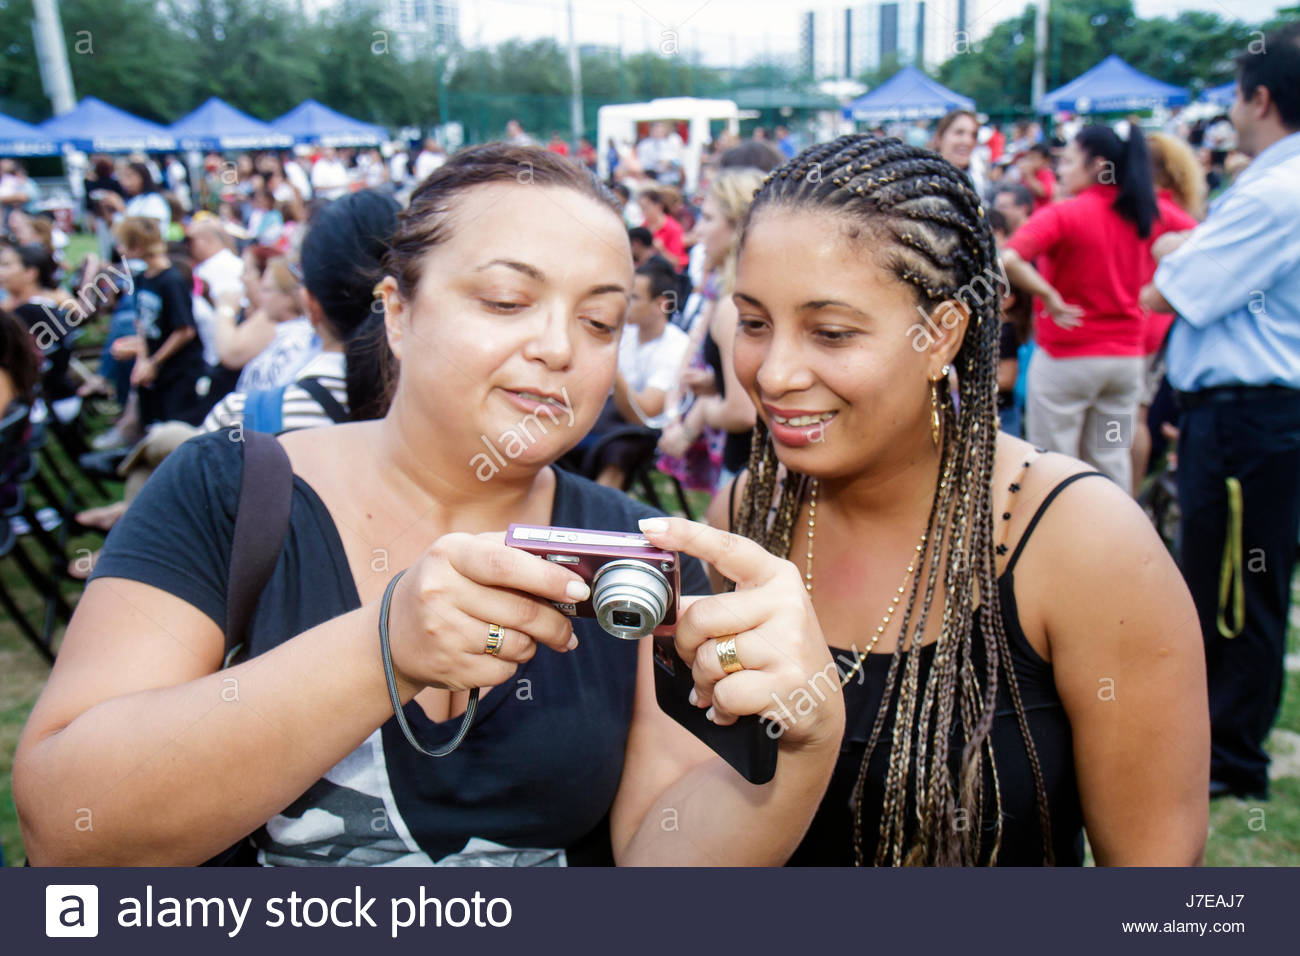 Miami Beach Florida North Beach Northshore Park Hispanic Heritage Festival Black woman camera looking at picture - Stock Image